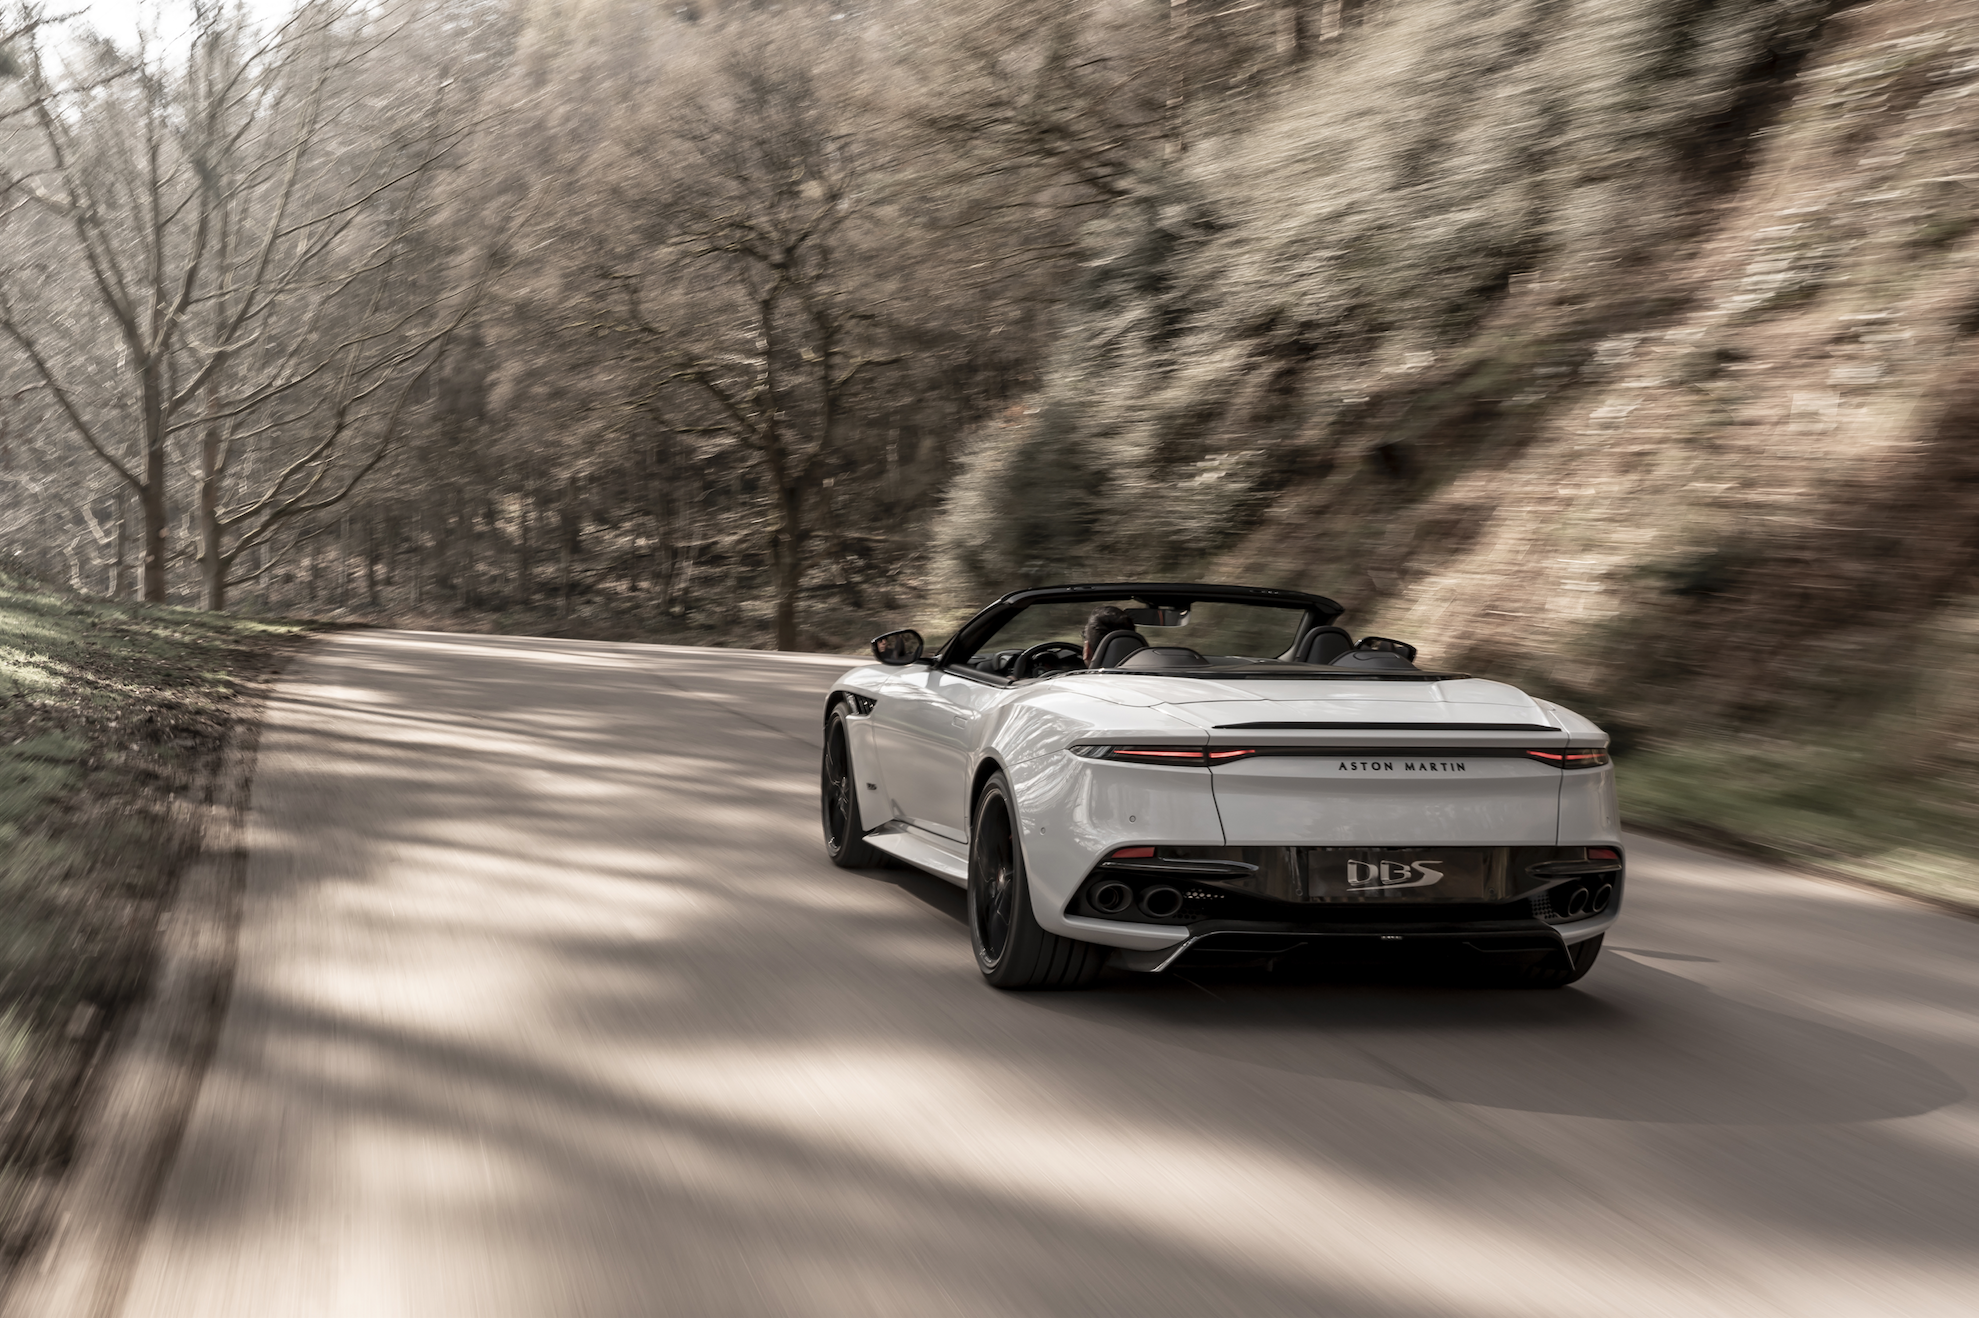 2020 Aston Martin Dbs Superleggera Volante Is A 211 Mph Drop Top